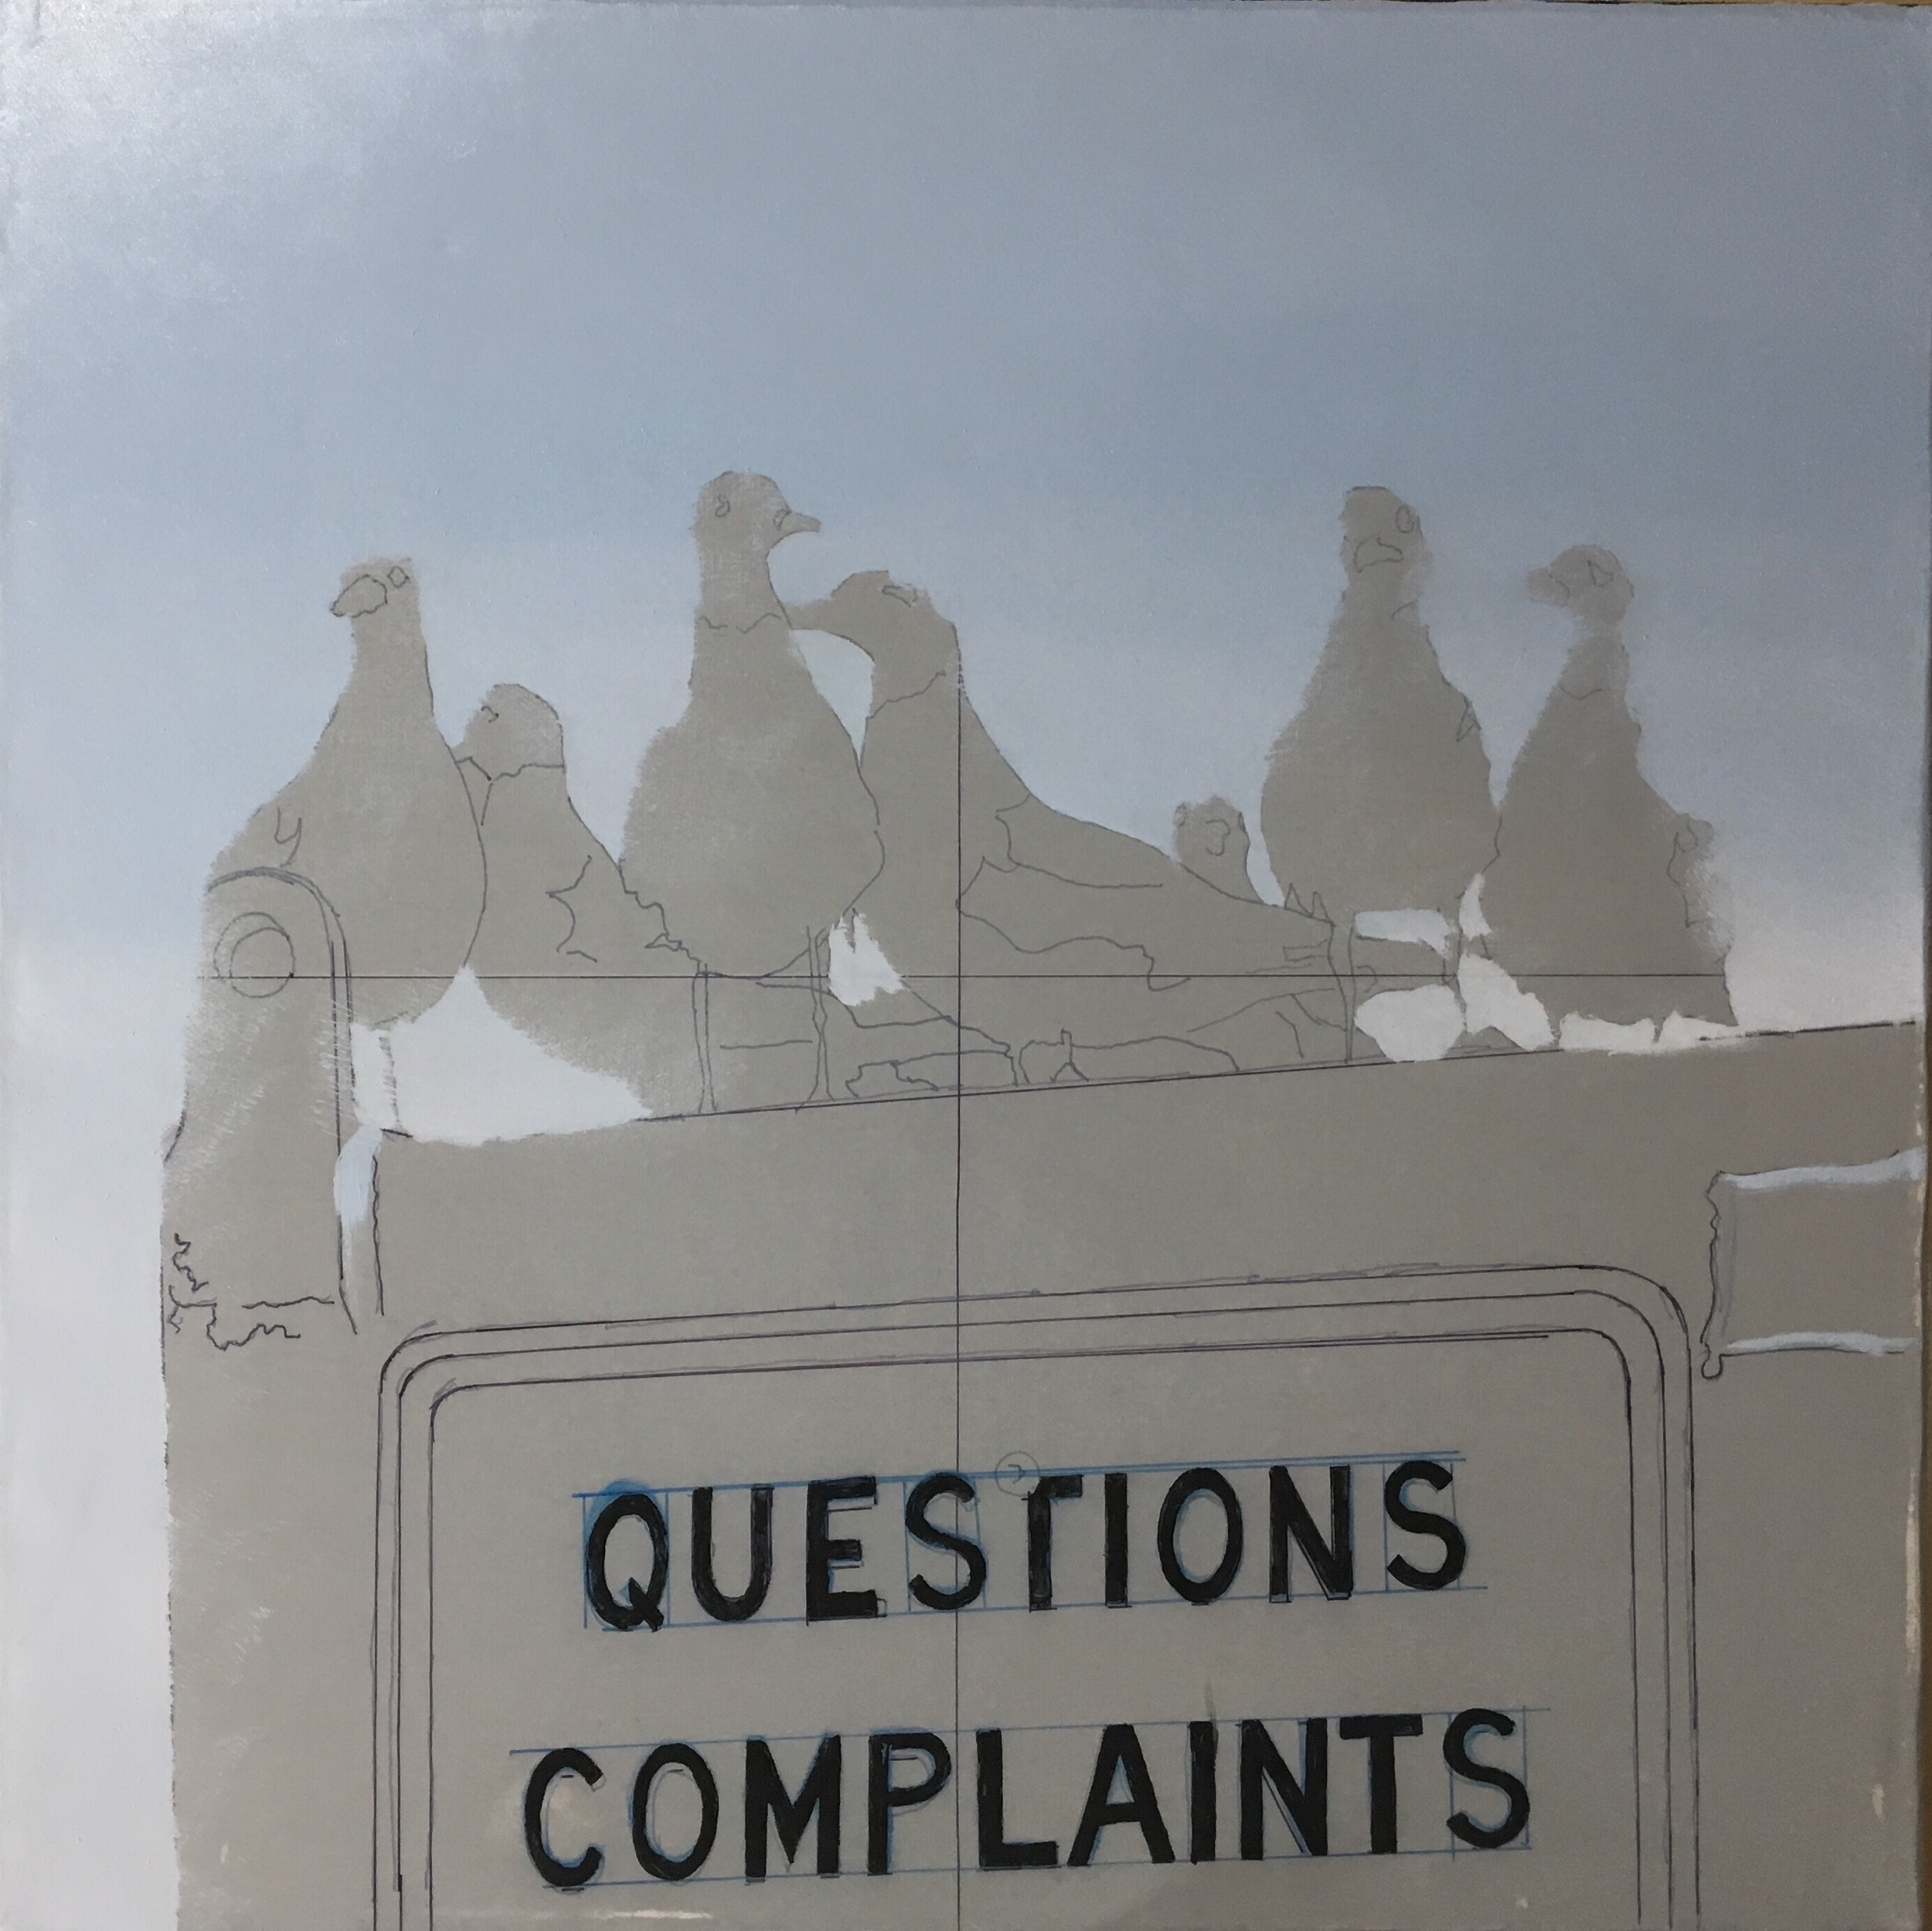 Complaint Department: - Session 2: Laying in the sky